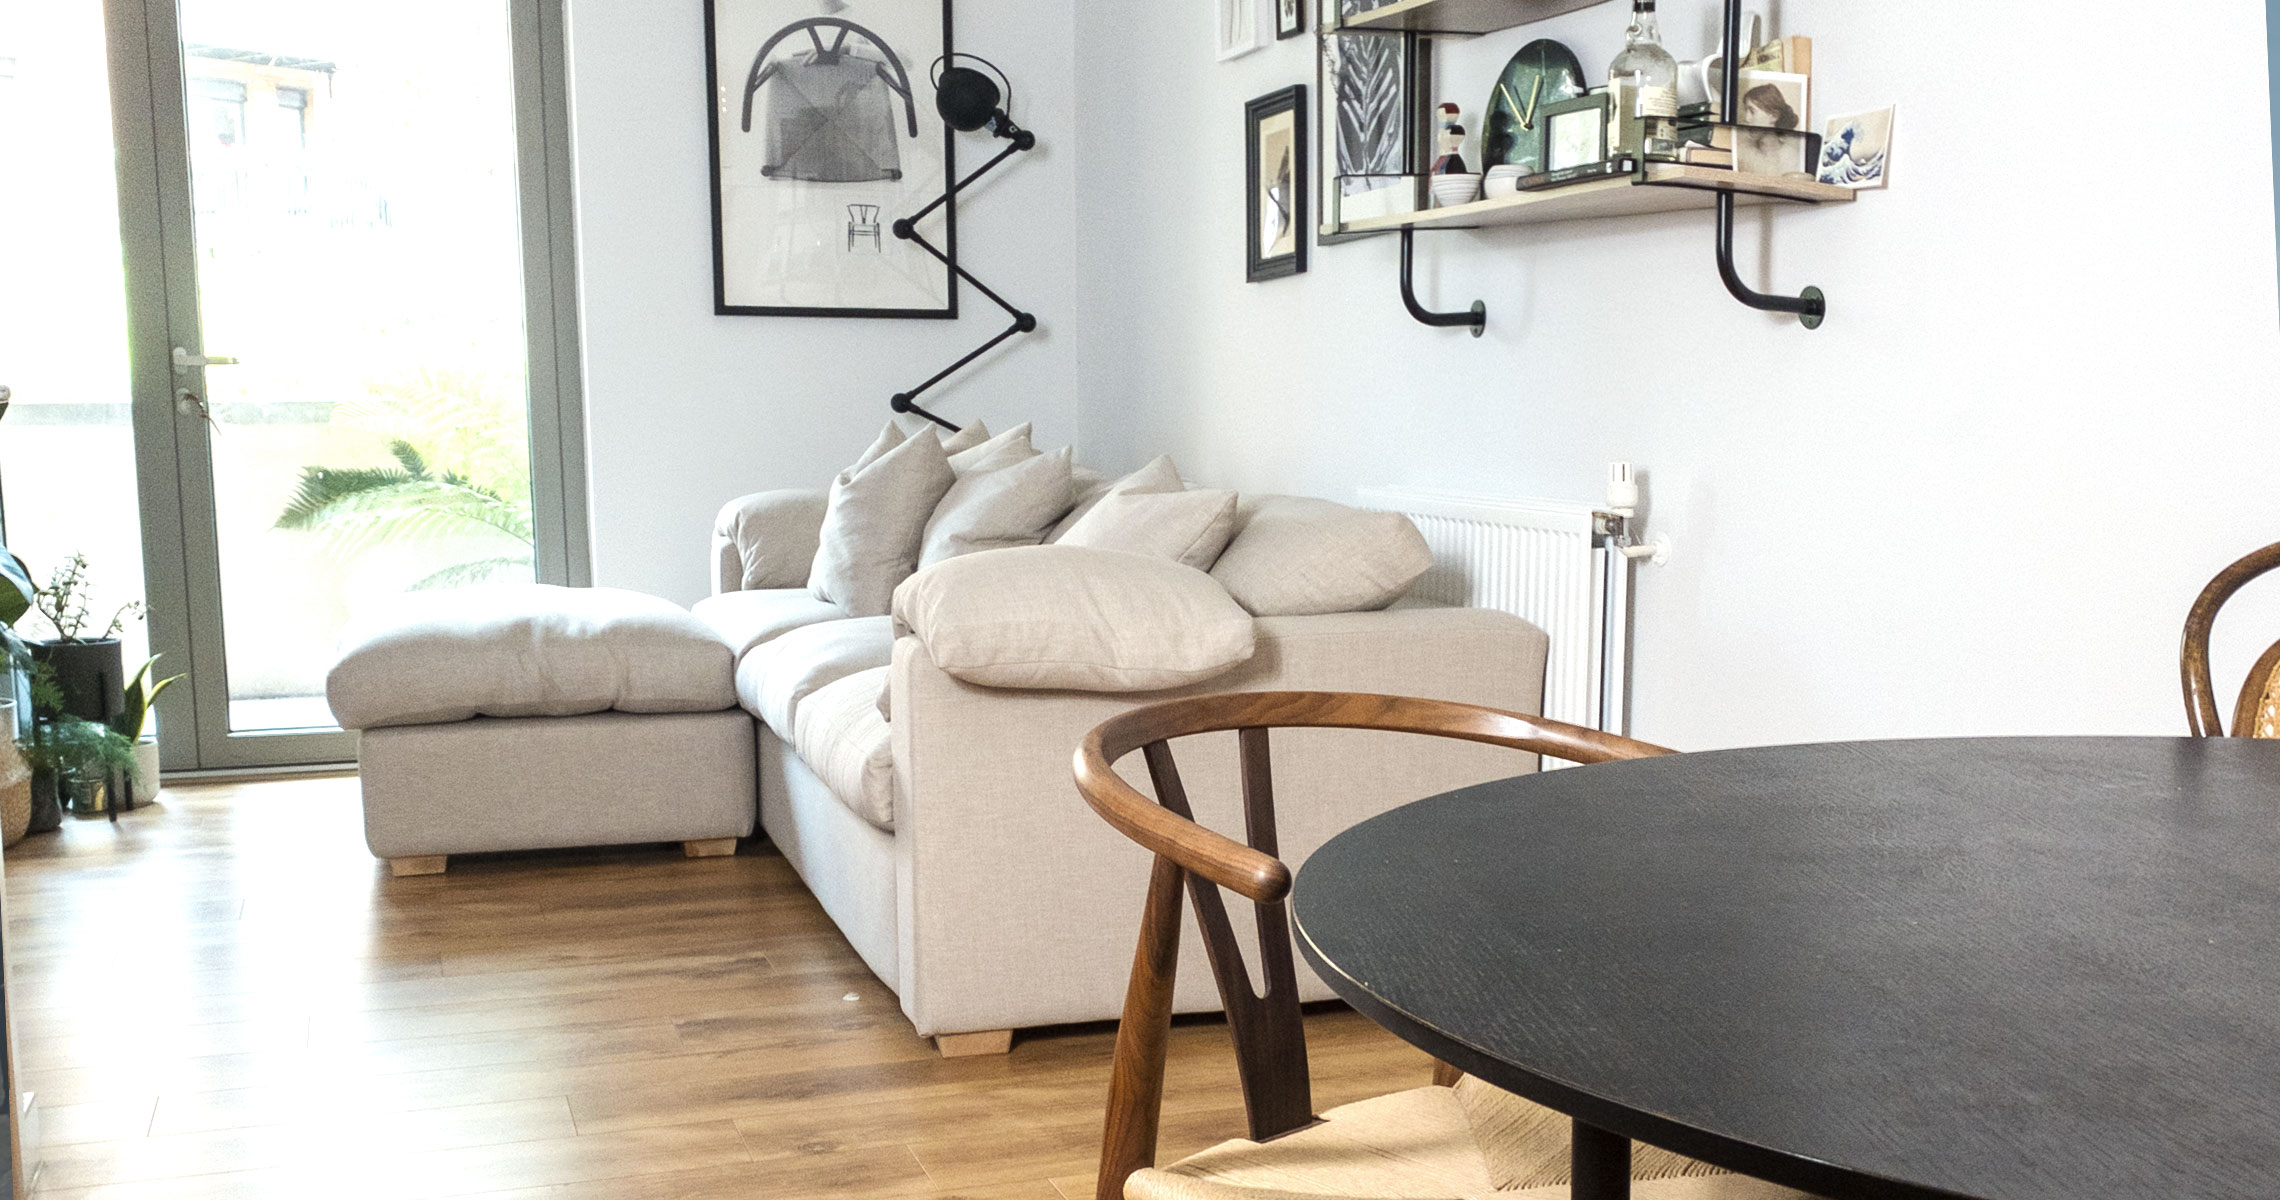 Hampstead-Residential-Scaife-Agency-Olson-and-Baker-Living-Room